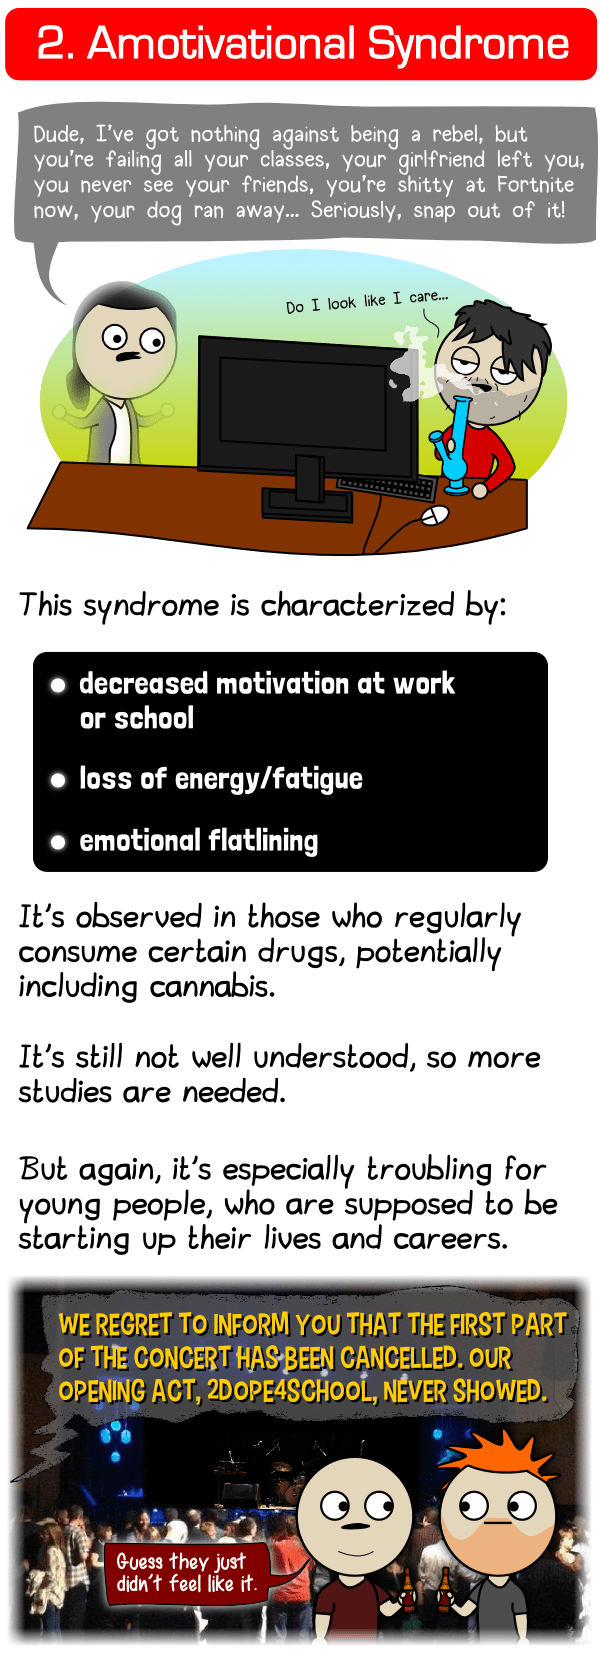 cannabis amotivational syndrome